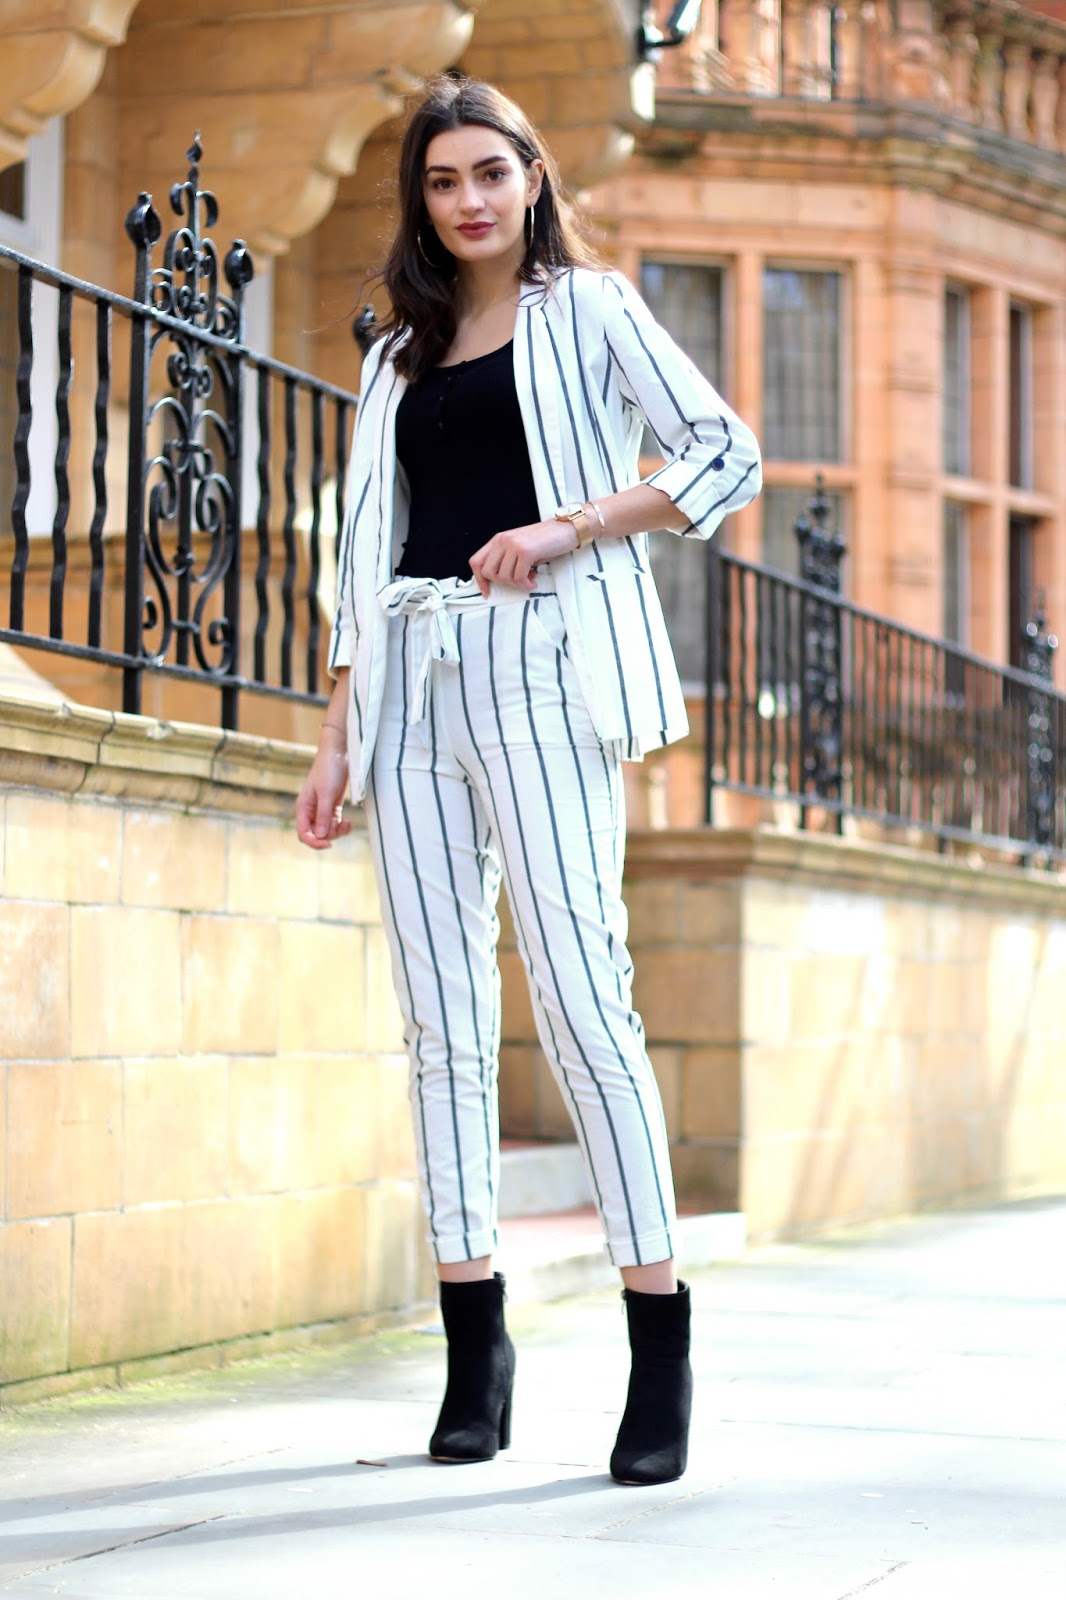 personal style blog peexo primark suit